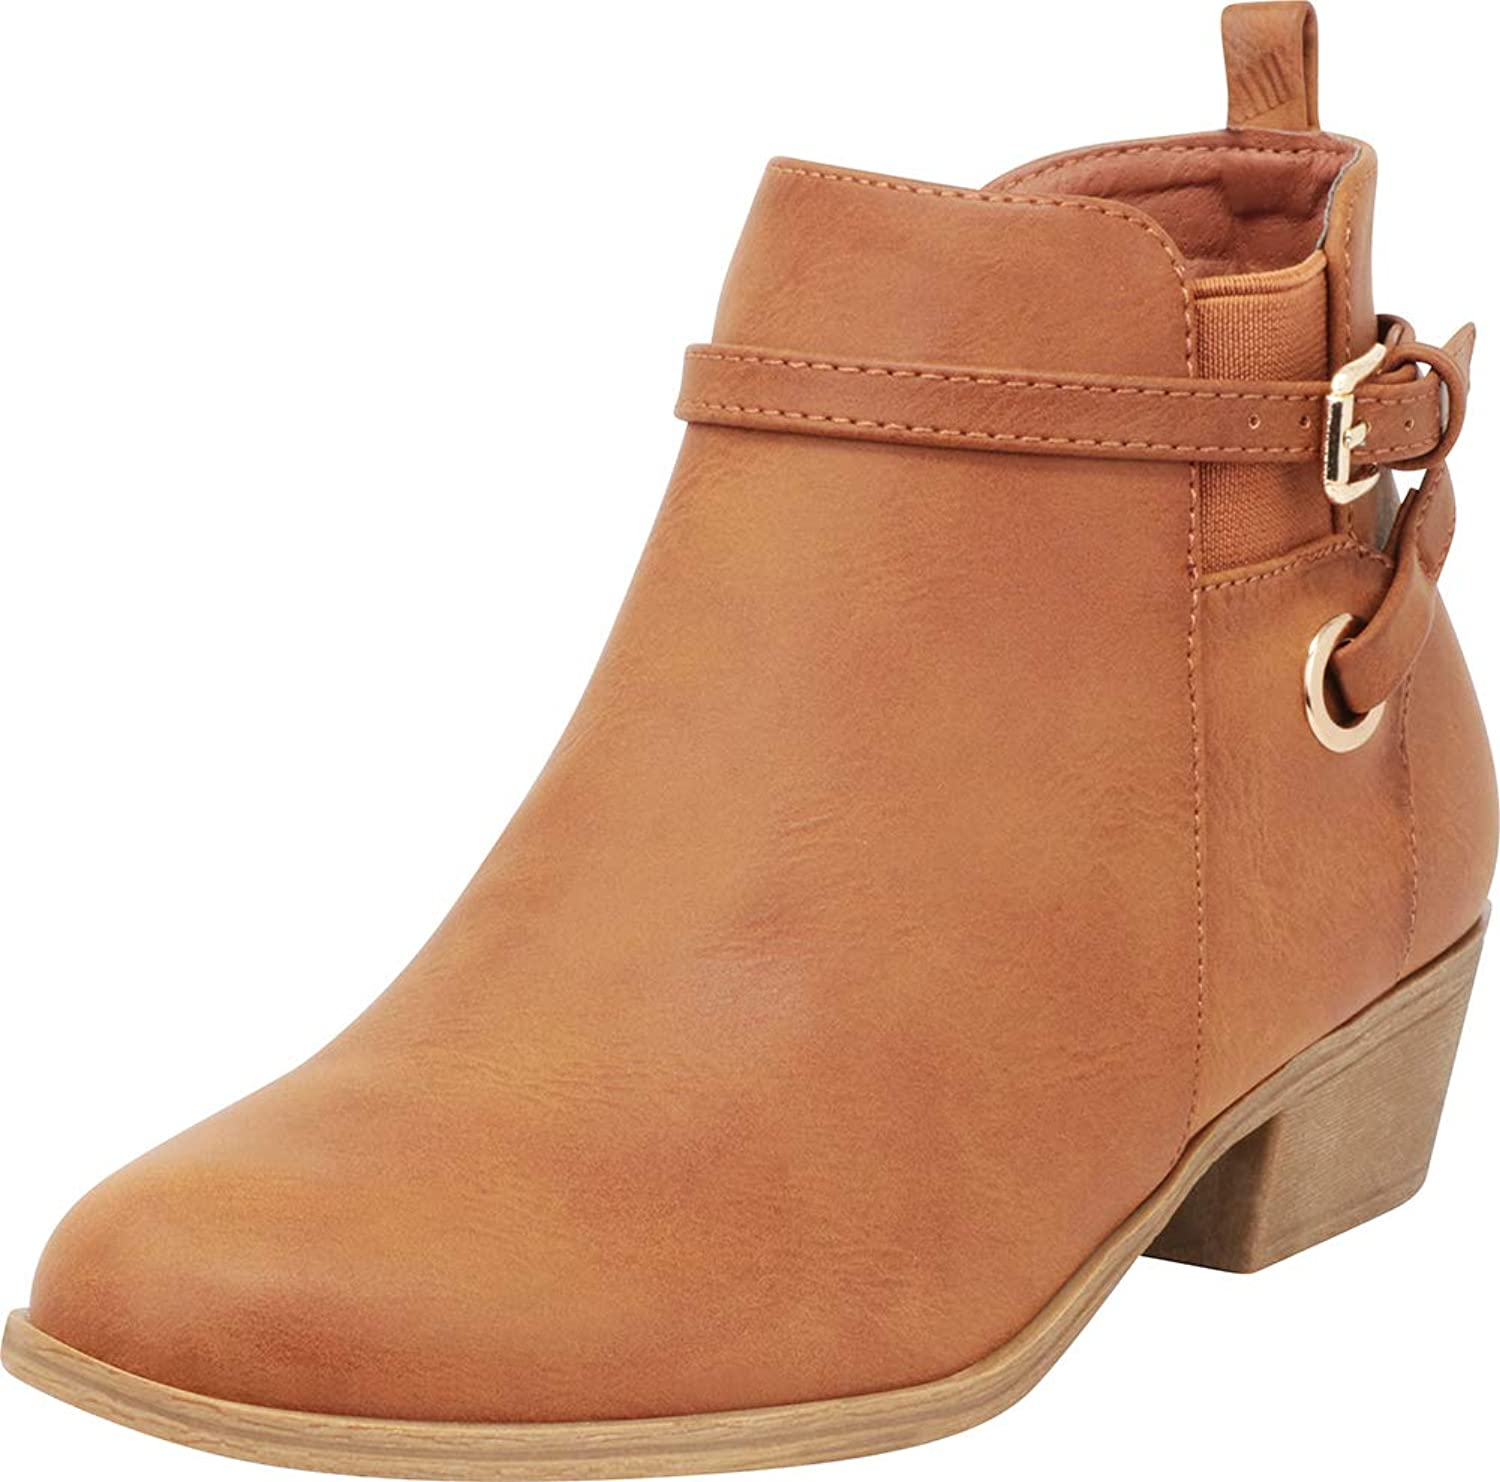 Cambridge Select Women's Chelsea Stretch Wraparound Strappy Chunky Block Heel Ankle Bootie